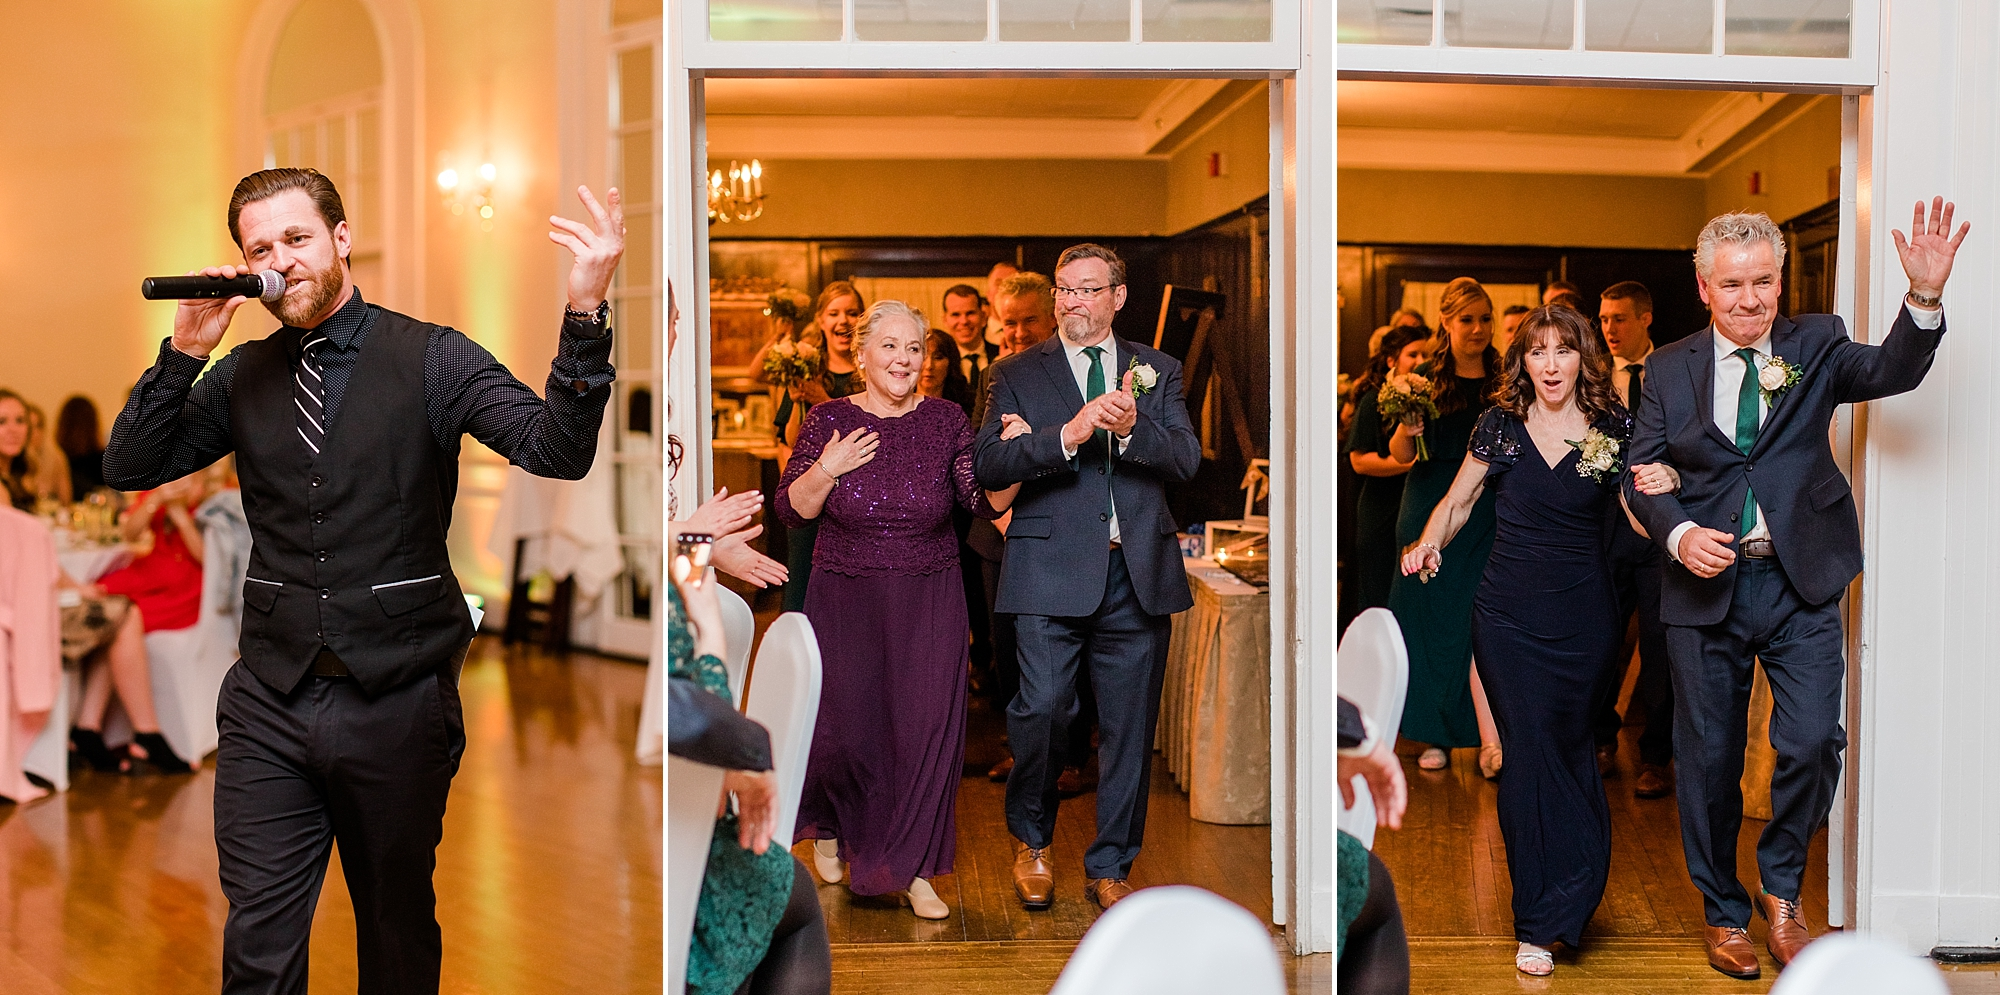 DJ Dane with 617 Weddings opened the night by having everyone stand up to greet the wedding party! First up were the parents of the sweet couple!